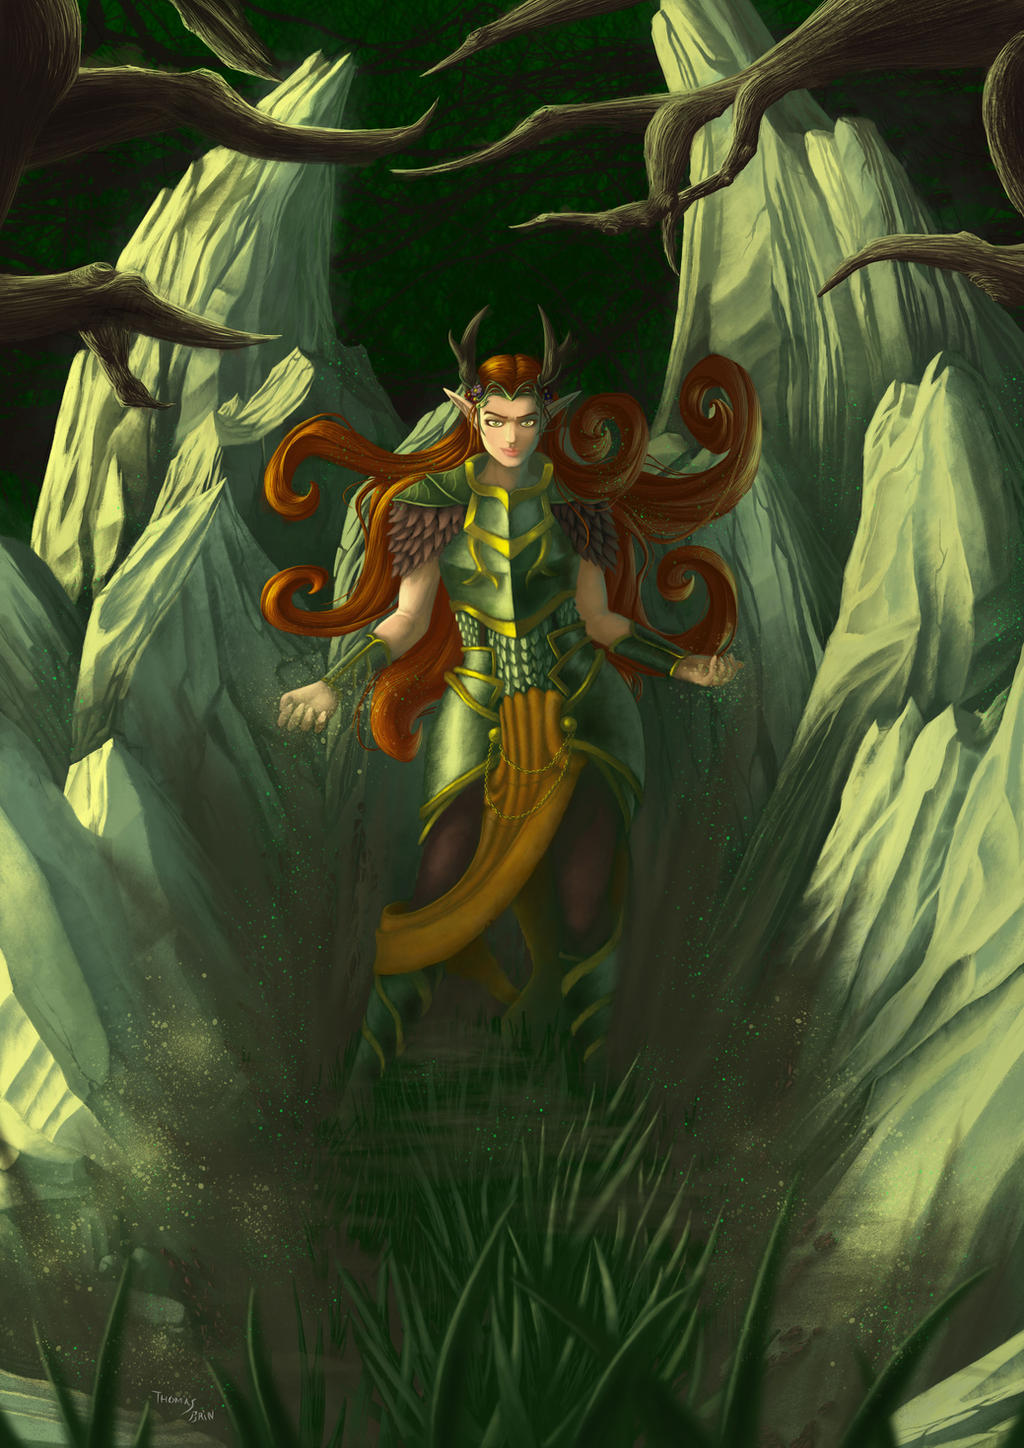 16 Criticalrolefanart Hashtag On Twitter: Fan Art : Keyleth Doing Magic By Mataujall On DeviantArt